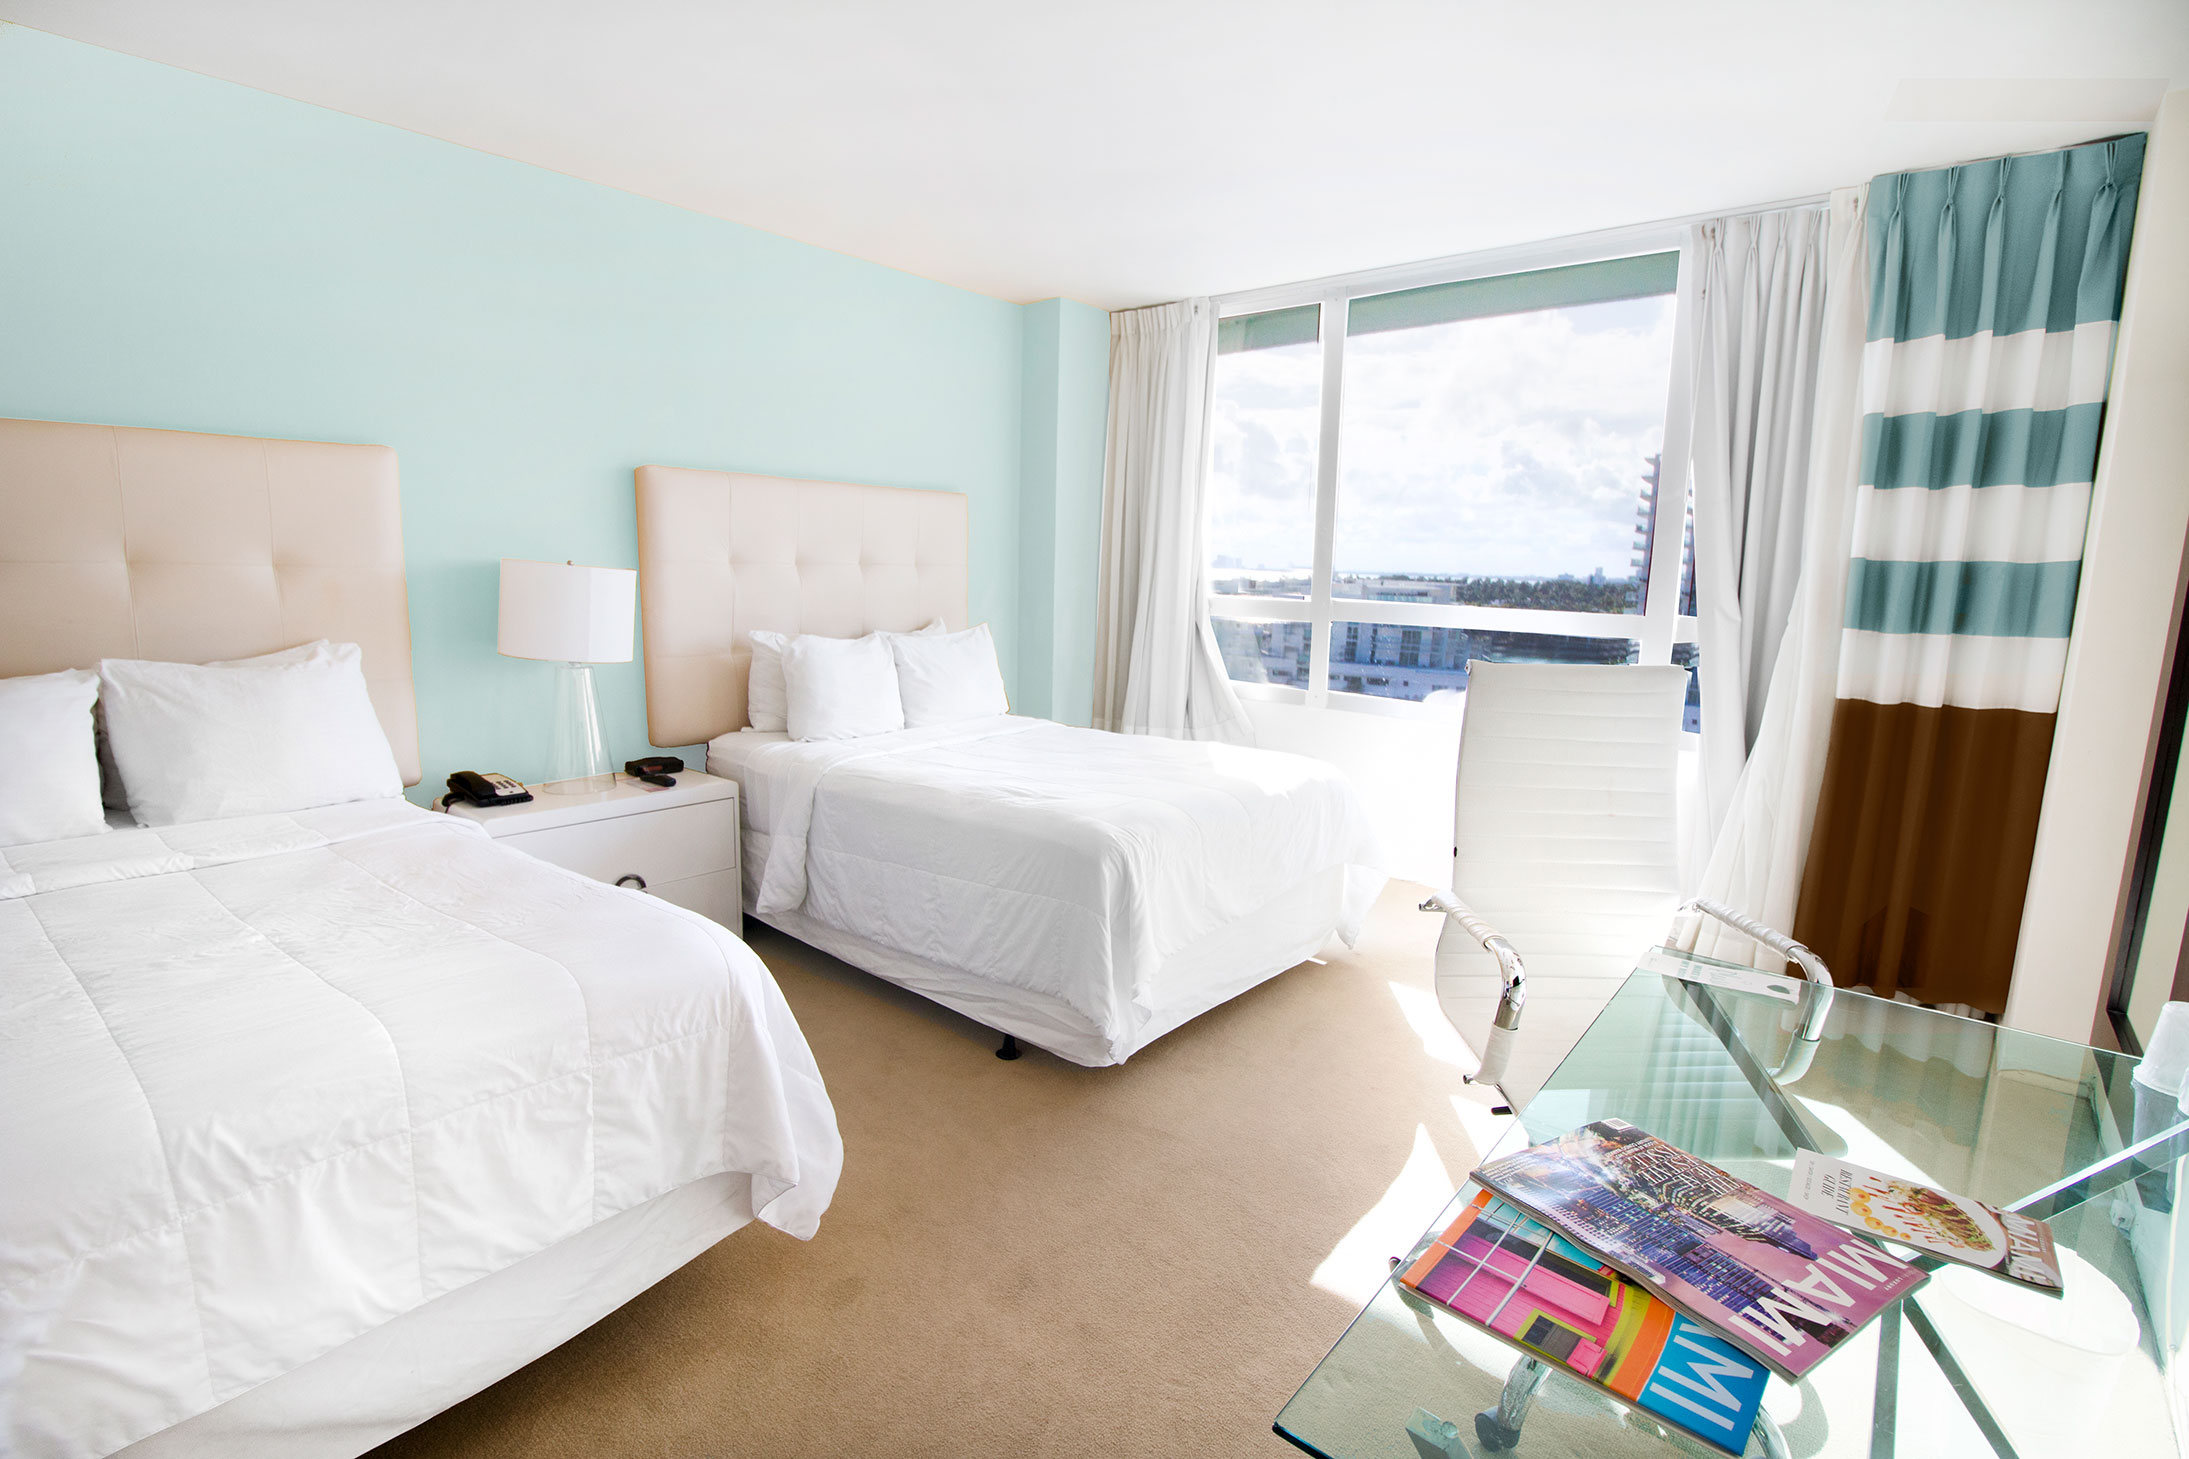 Deluxe city view 2 doubles room type at the Deauville Beach Resort